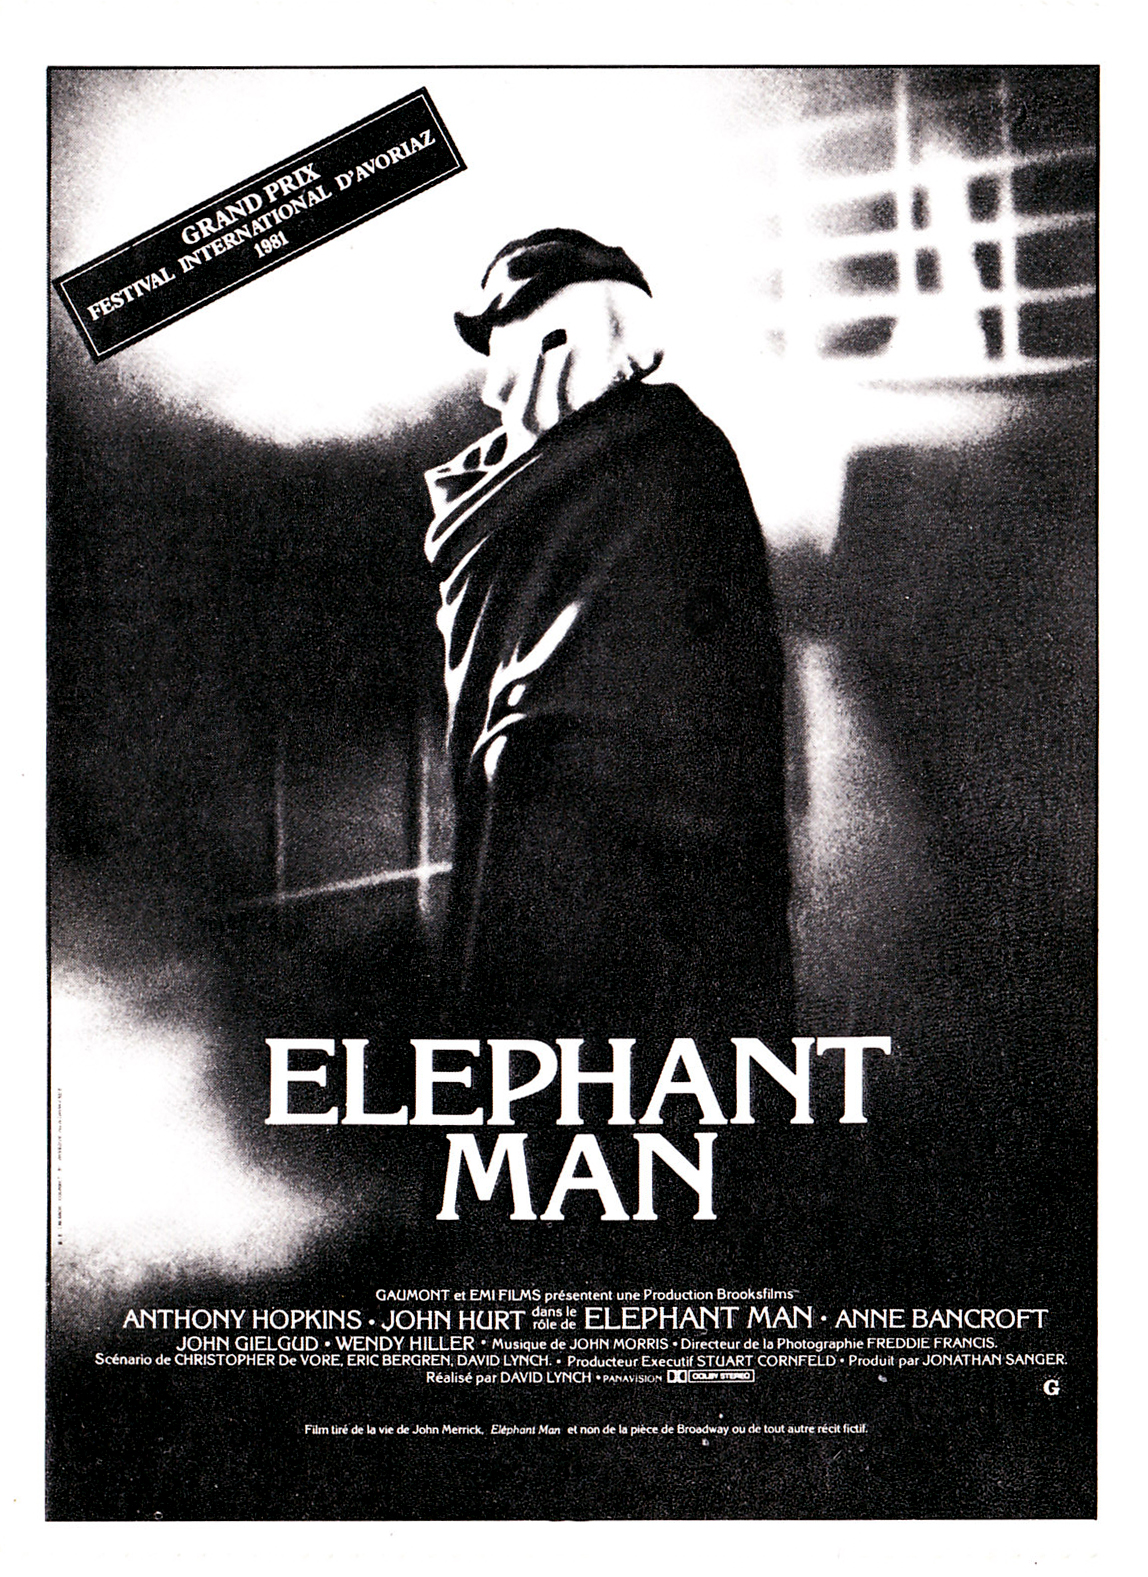 an analysis of the movie the elephant man C hand and the way the elephant man walks analysis 1 this shows / i believe that he possesses admirable character traits of kbat being an observant person and i wish i could be like him too so that i could be aware of my surrounding topic i also admire dr frederick treves because he is a curious person.